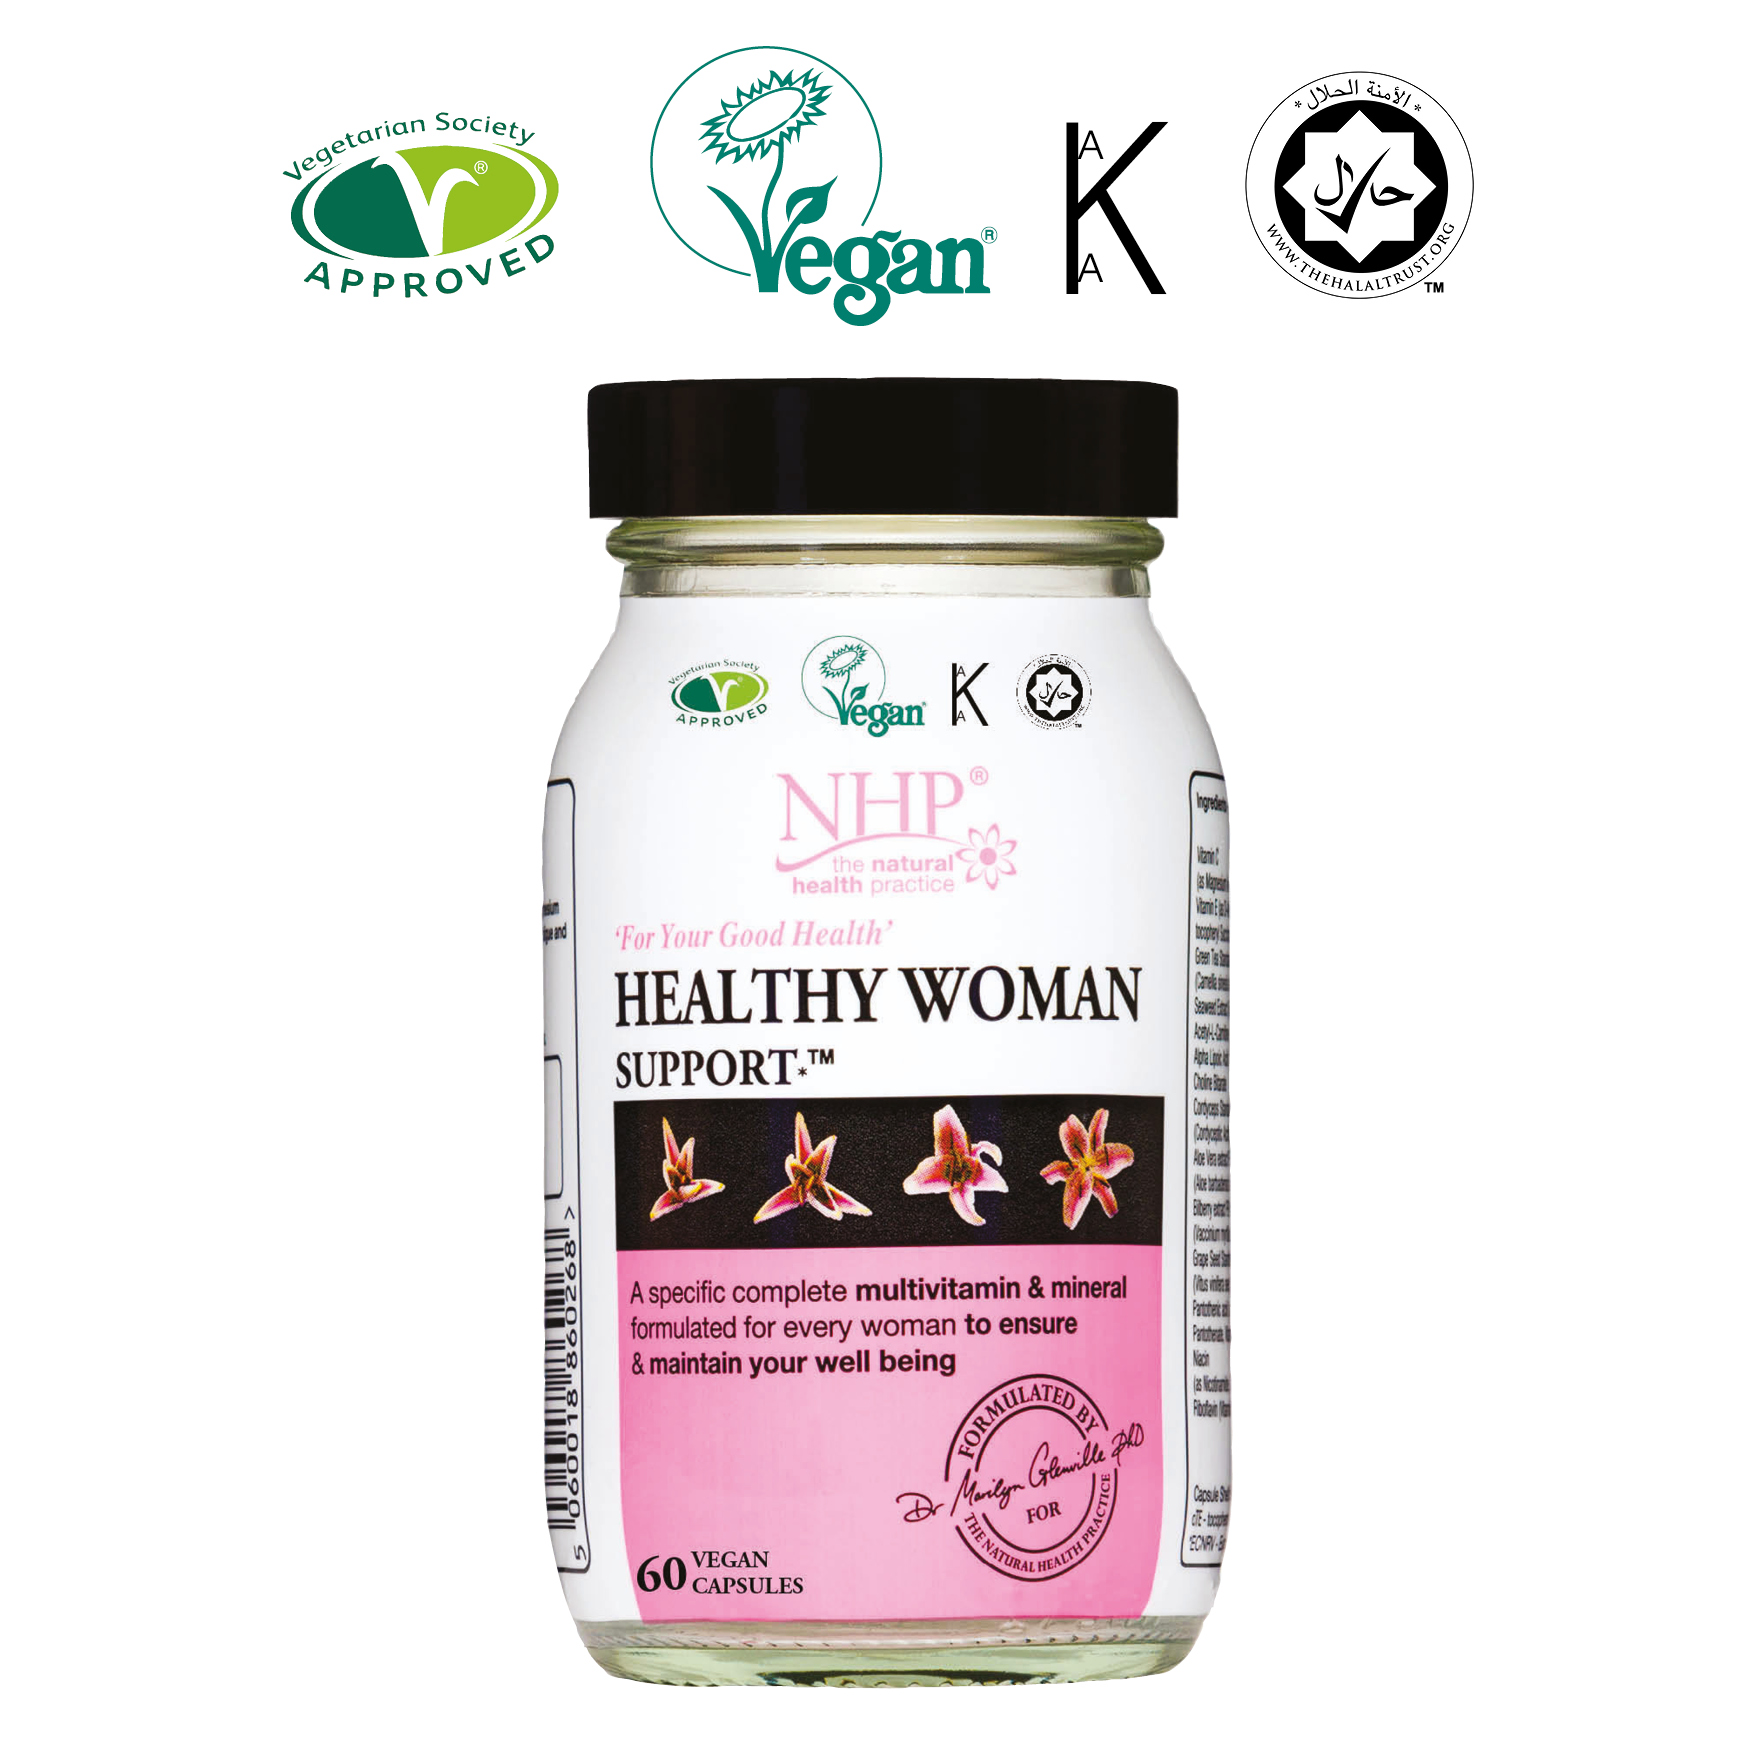 NHP Healthy Woman Support